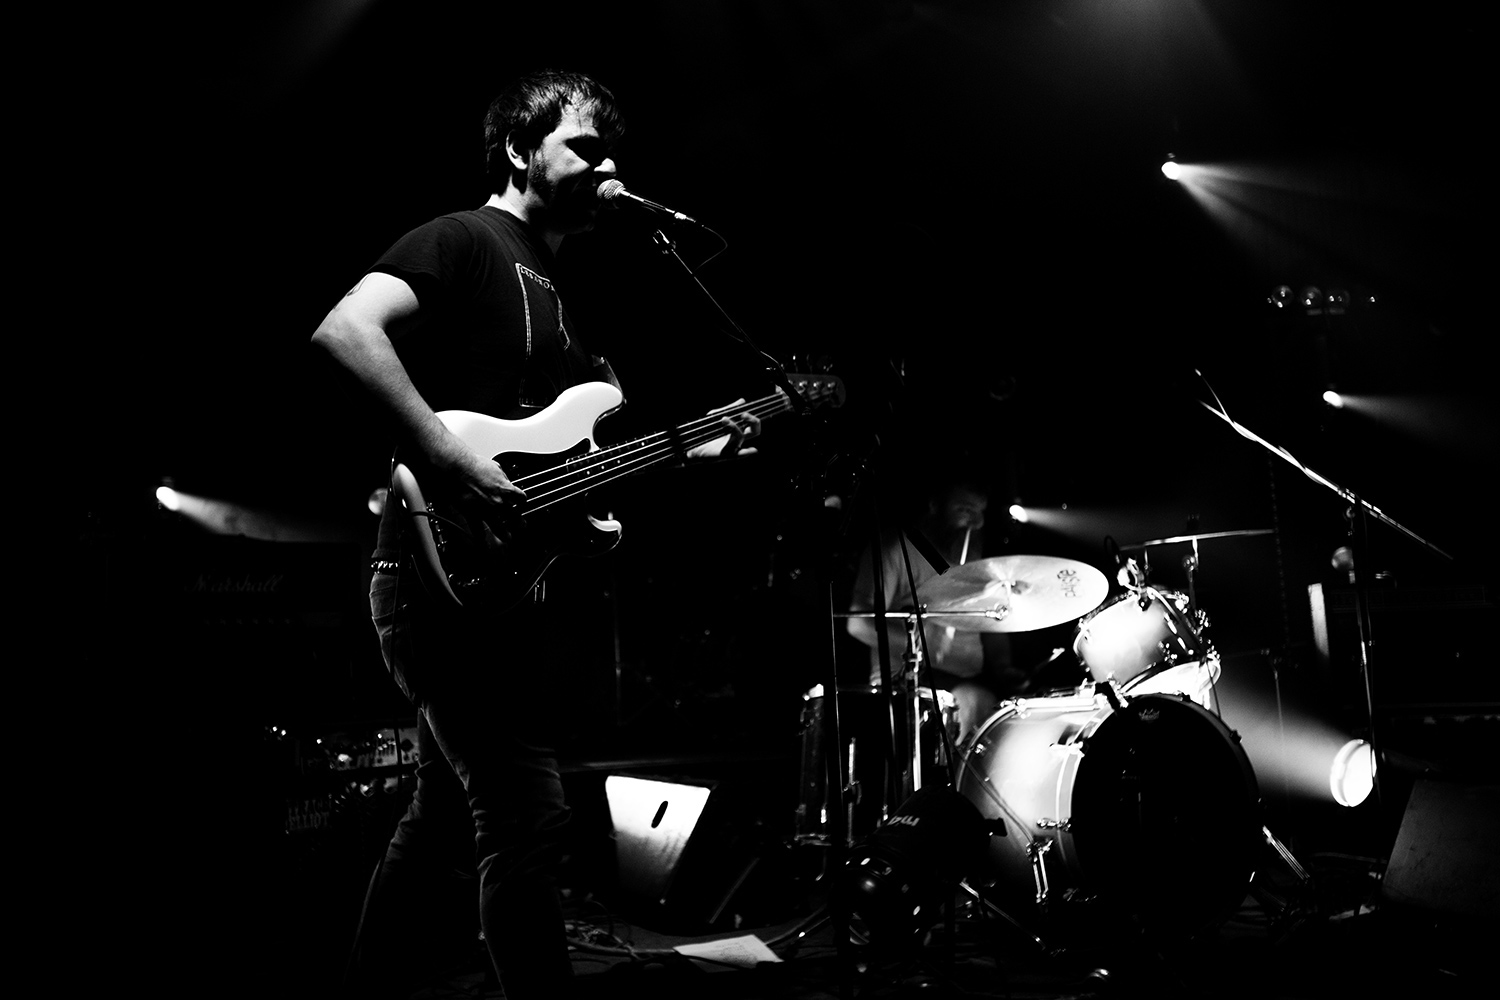 Bayacomputer by Laurent Orseau - Concert - Magasin 4 - Brussels, Belgium #4